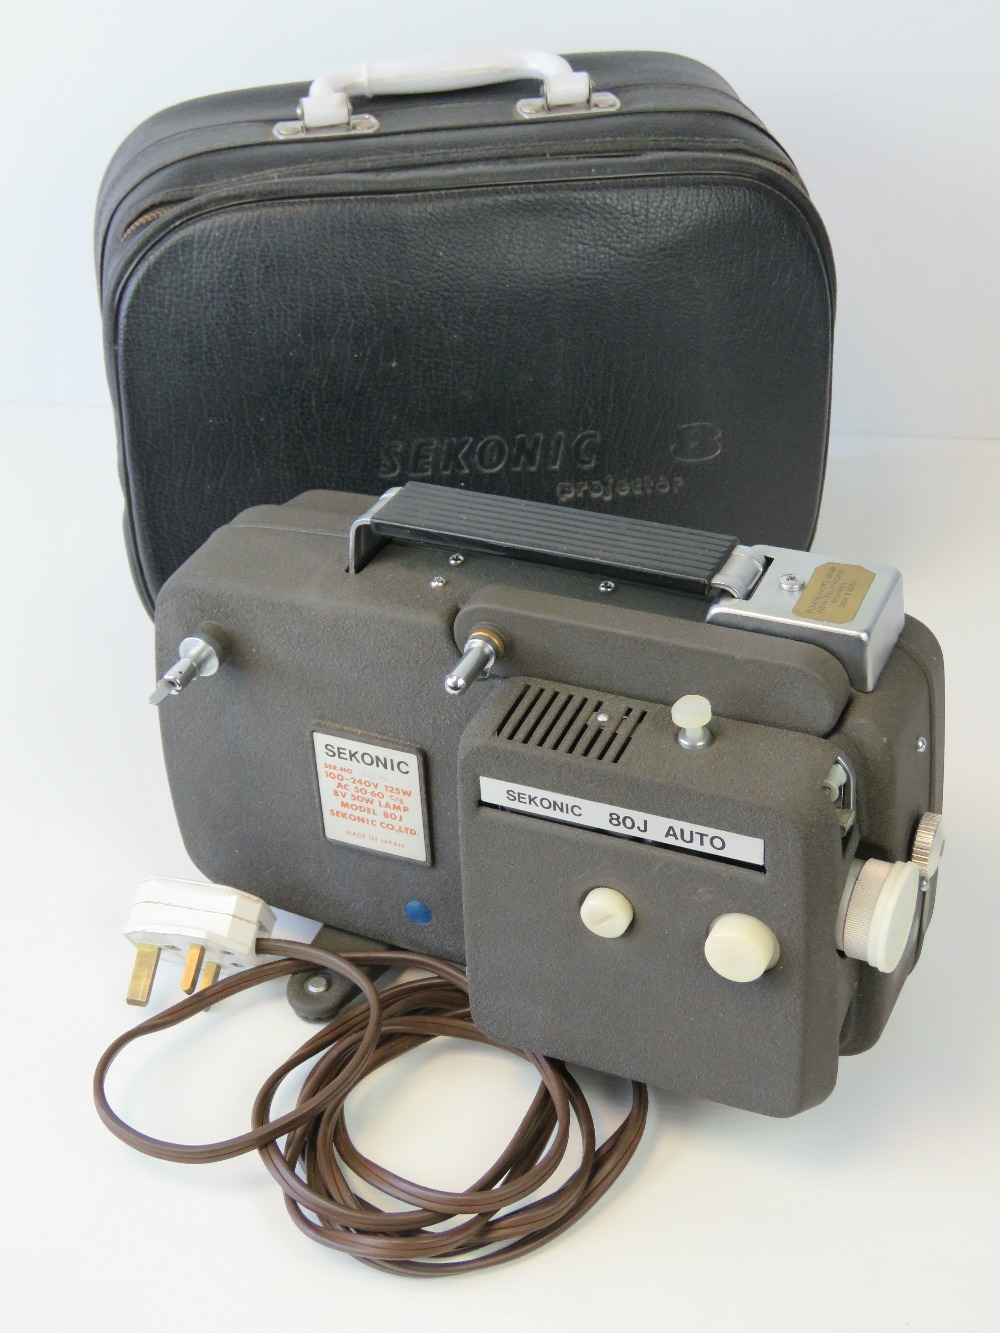 A Sekonic 80J Auto 8mm cine projector, w - Image 3 of 4